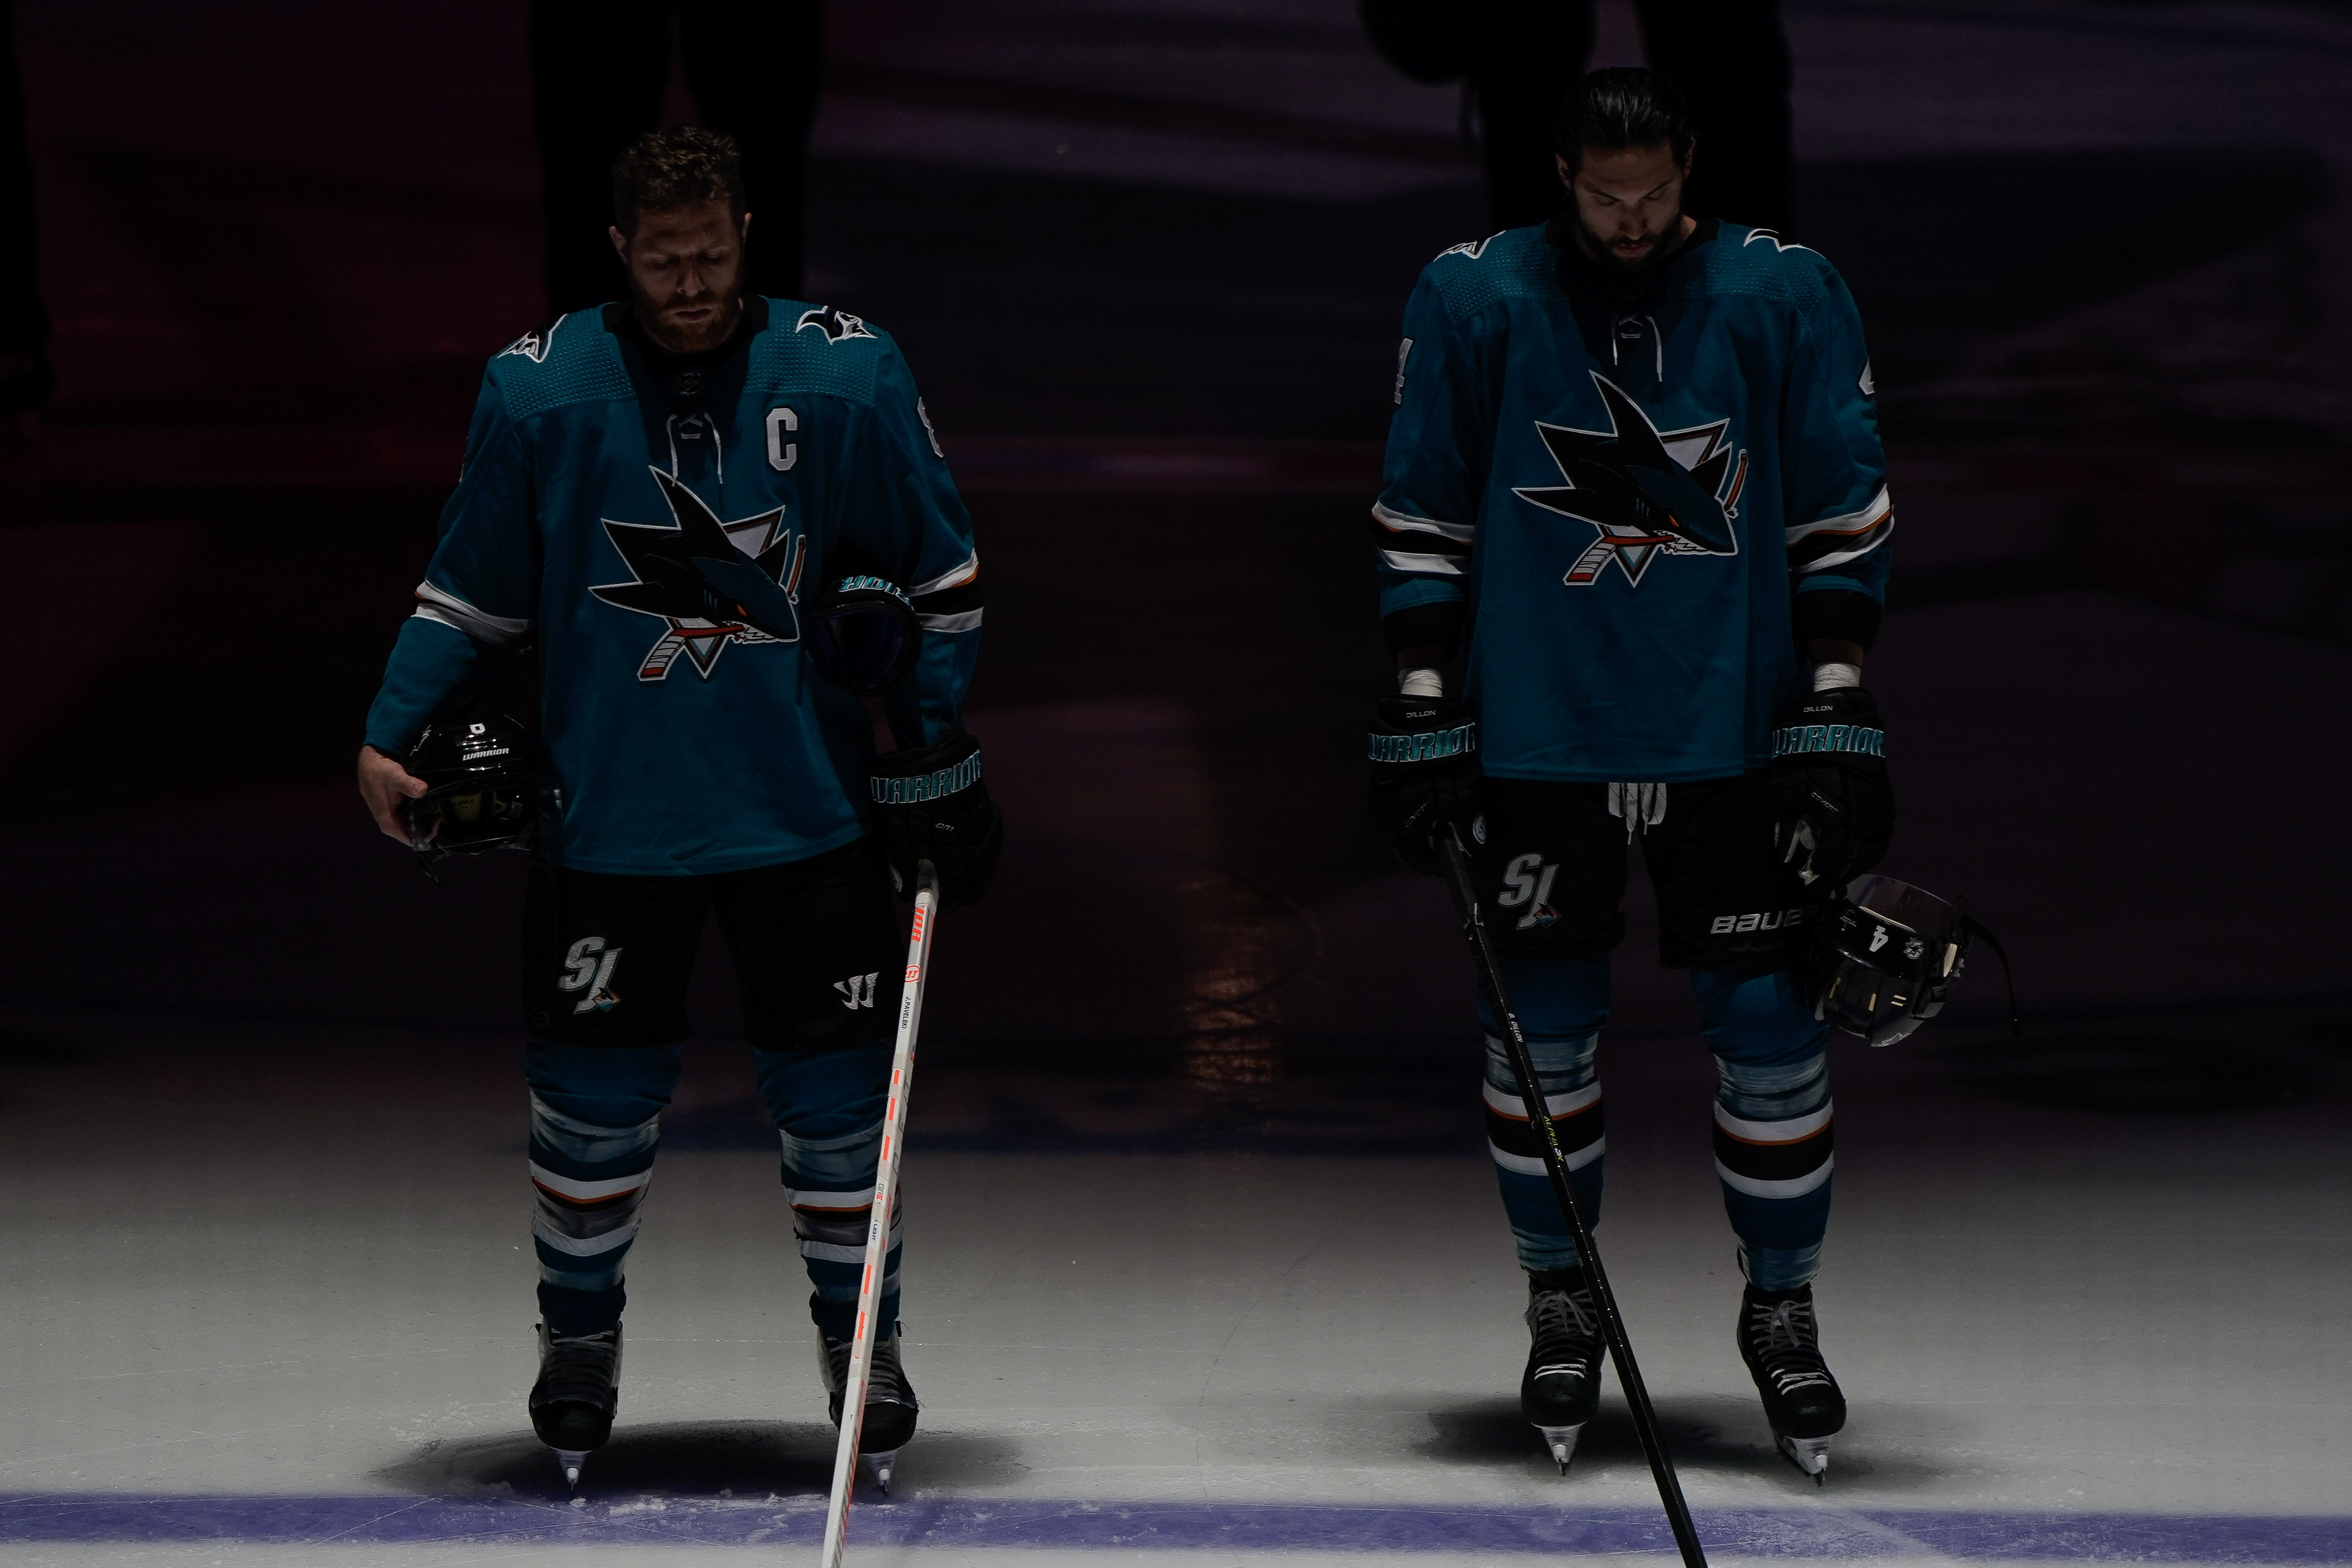 San Jose Sharks center Joe Pavelski (8) and defenseman Erik Karlsson (65) line up for the National Anthem before the game against the St. Louis Blues in Game 5 of the Western Conference Final of the 2019 Stanley Cup Playoffs at SAP Center at San Jose.